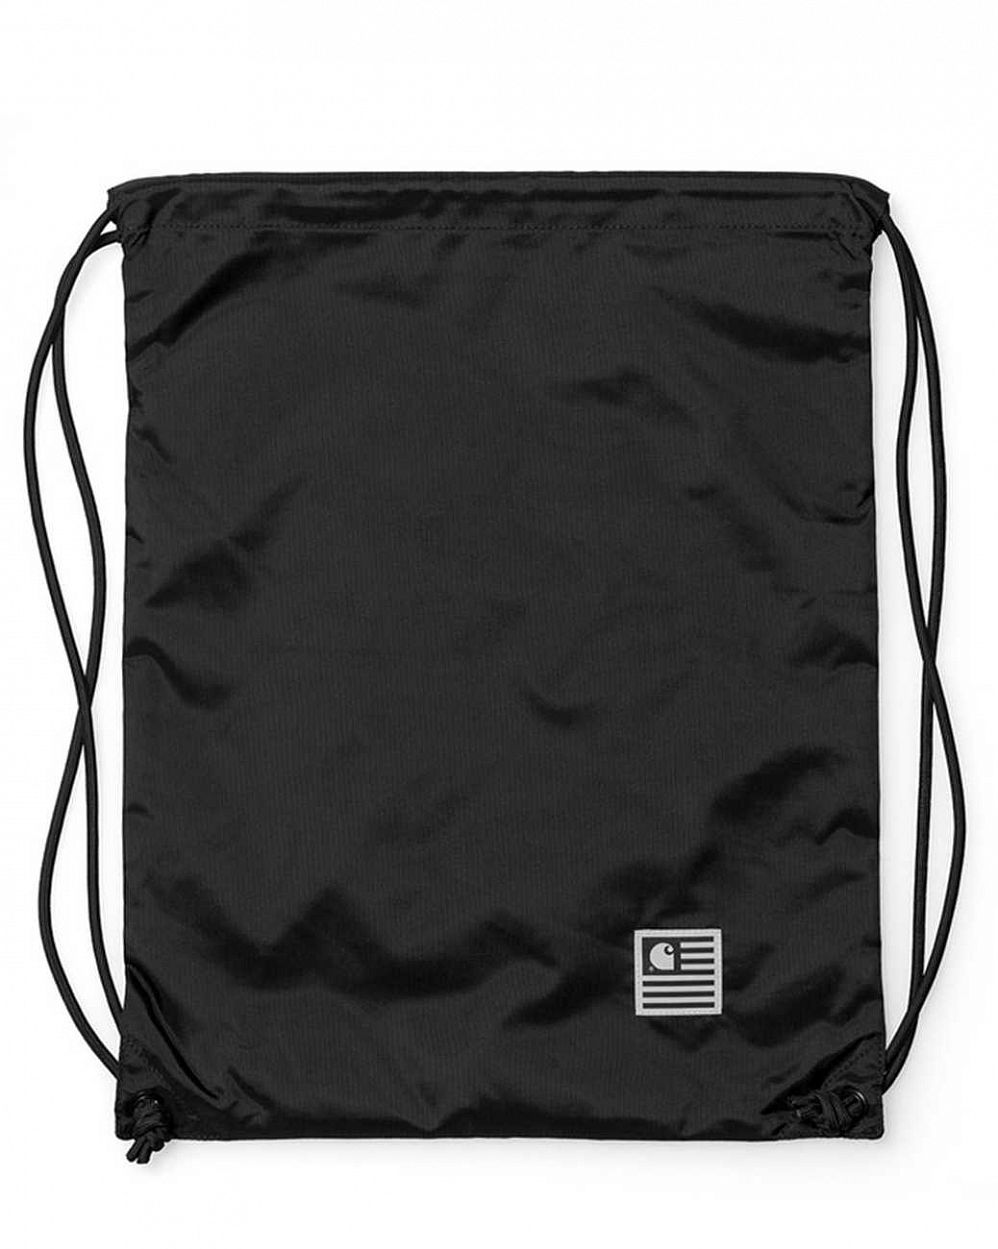 Рюкзак-мешок Carhartt WIP Slate Bag Black отзывы